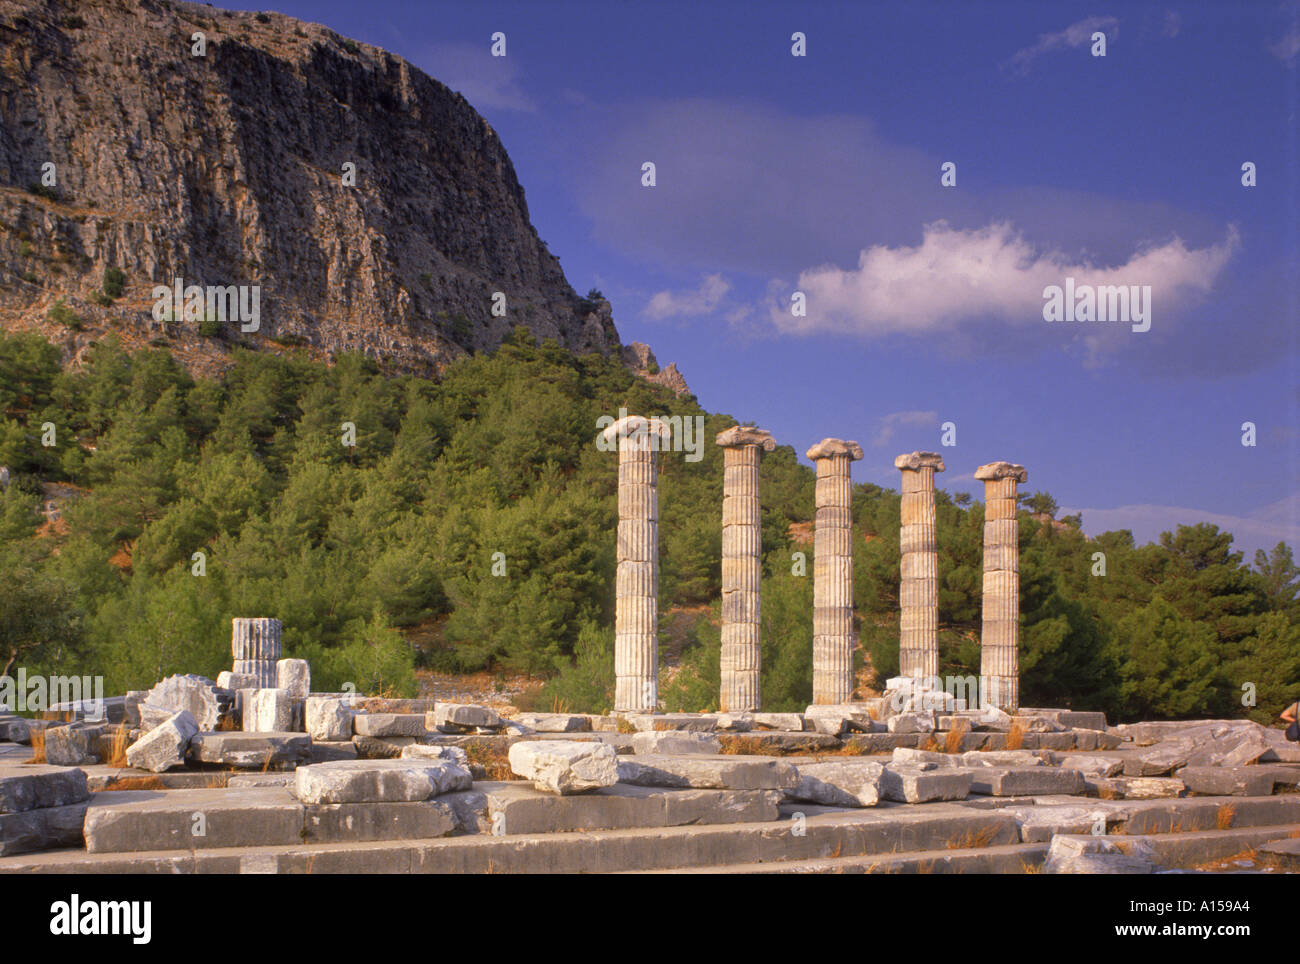 Columns and ruins of the Ionian Temple to Athena and the Greek theatre at the archaeological site of Priene in Turkey Stock Photo